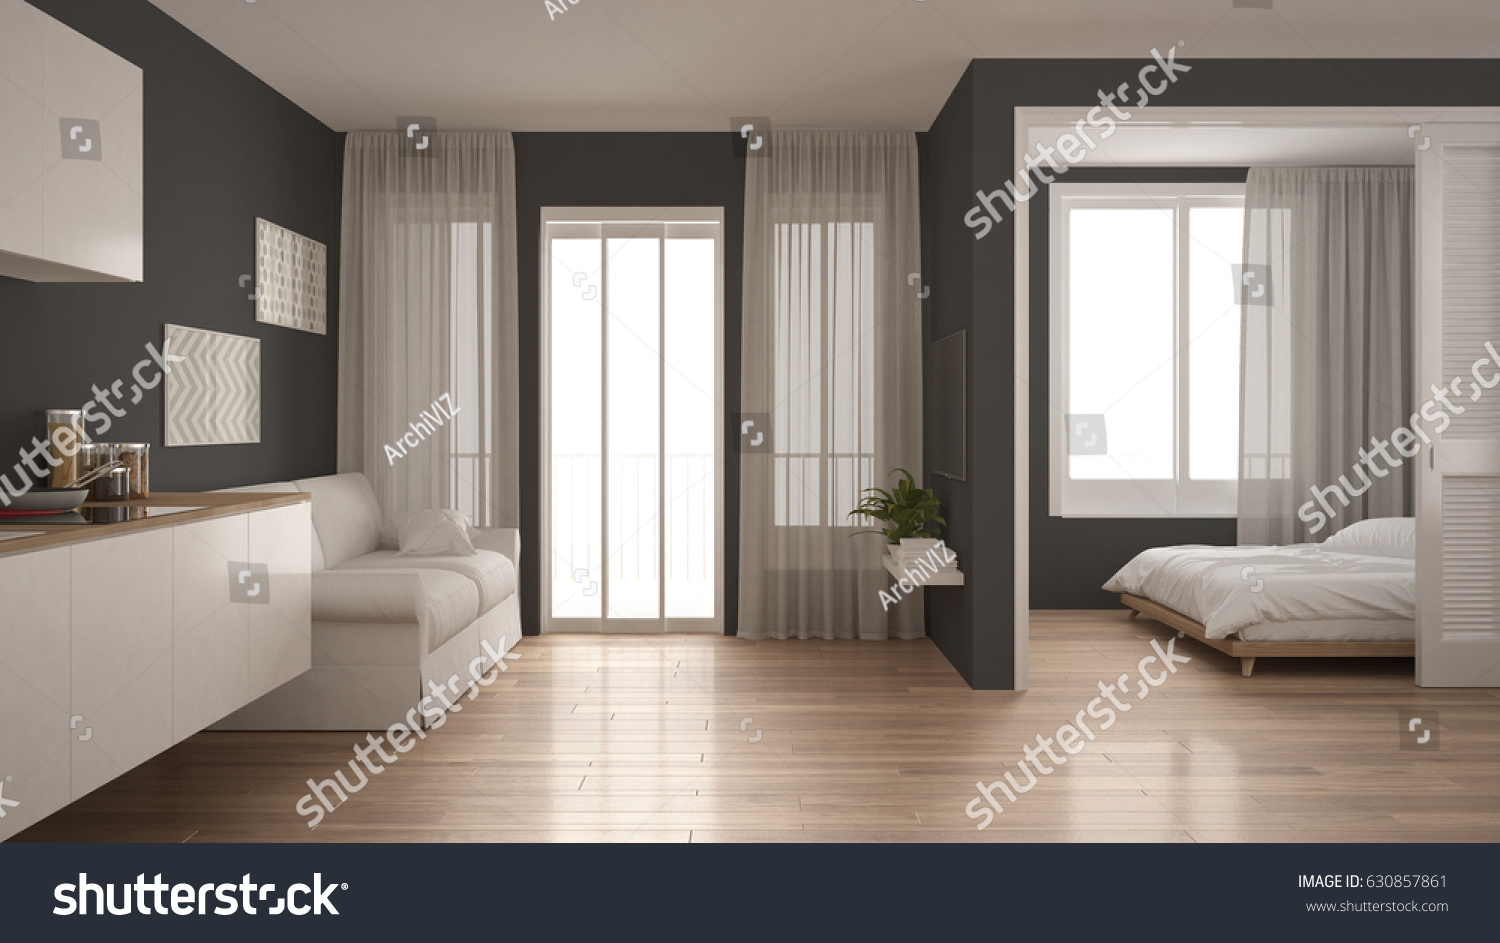 Small Apartment Kitchen Living Room Bedroom Stock Illustration ...